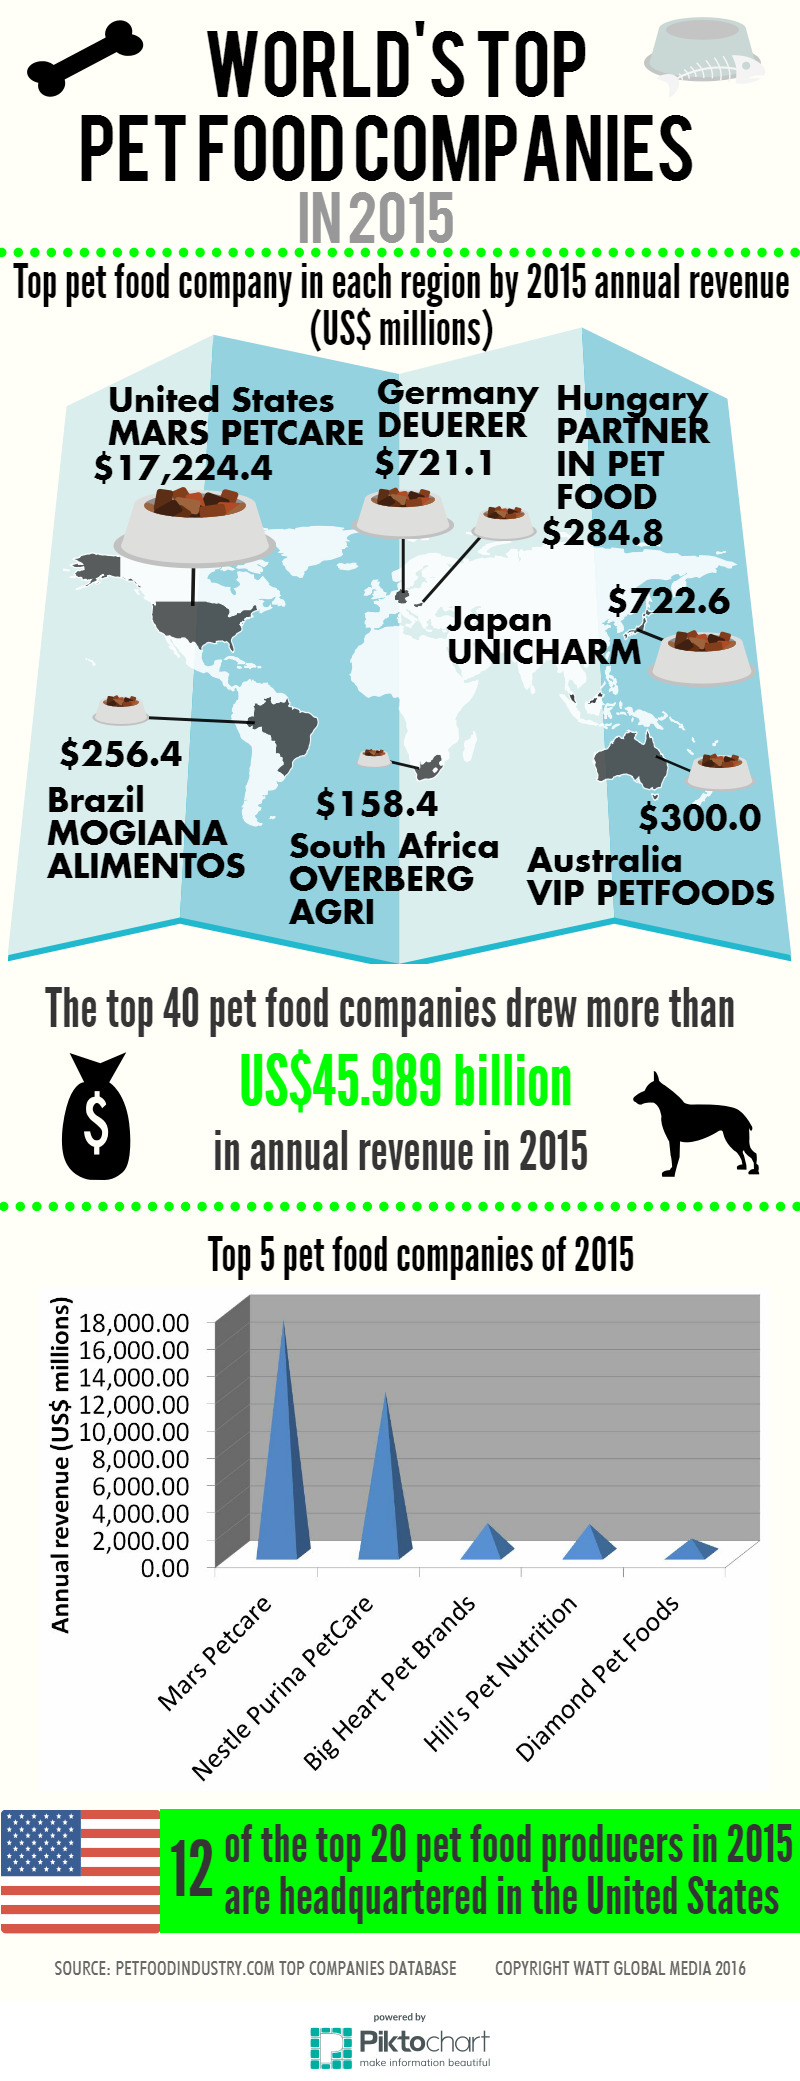 world-s-top-pet-food-companies-in-2015